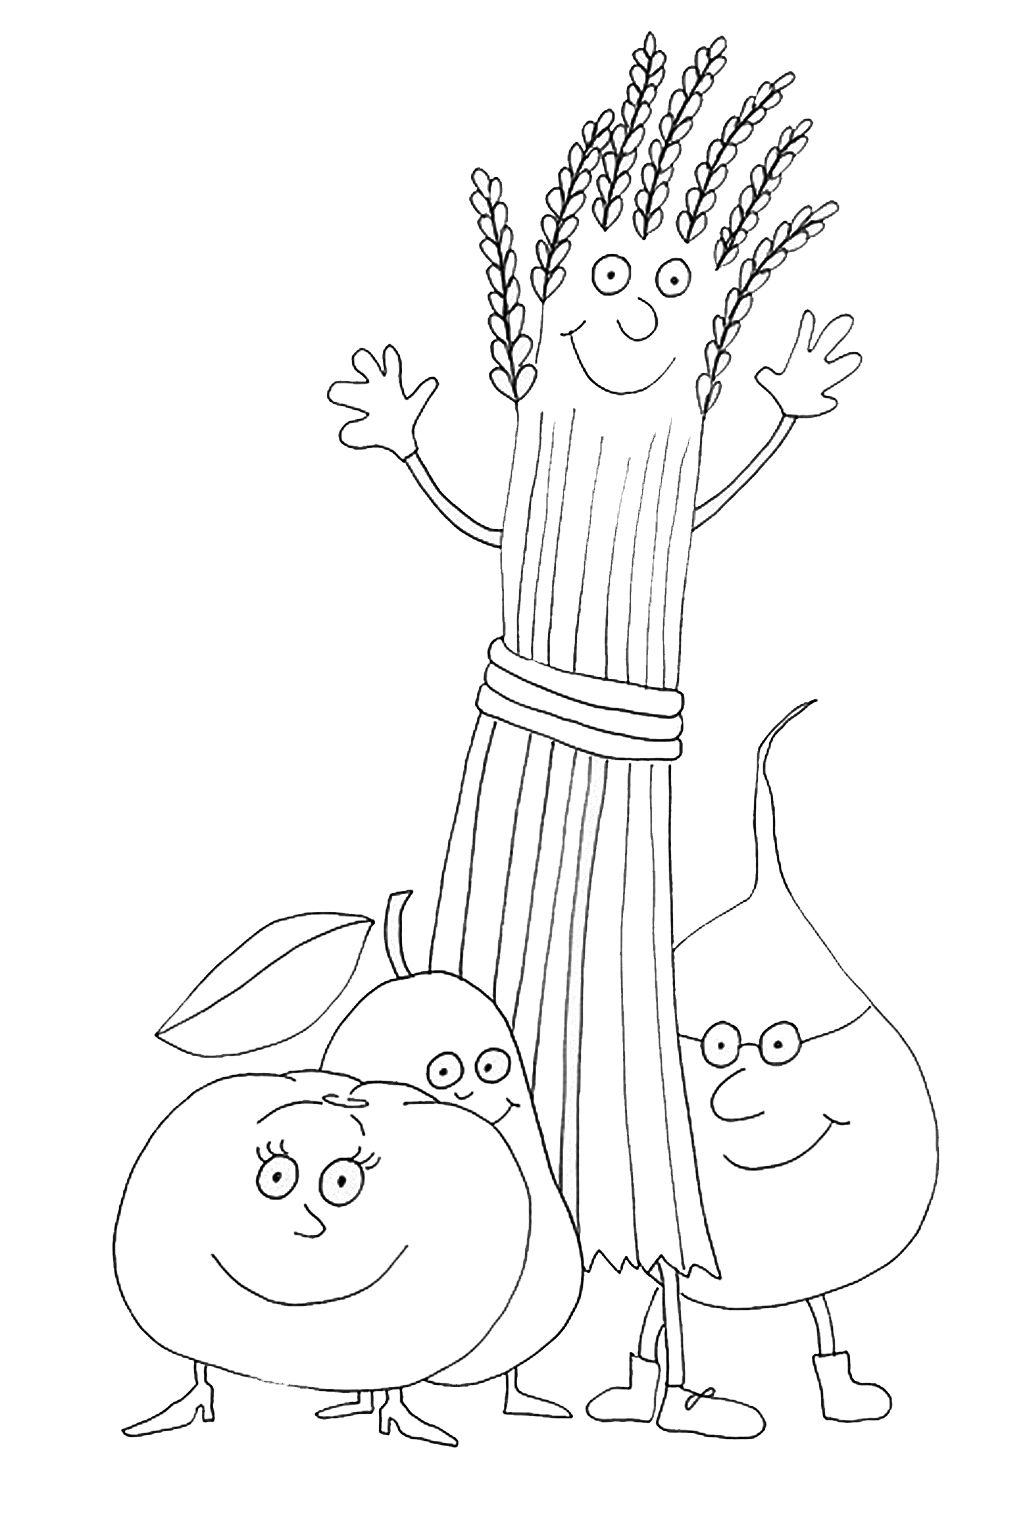 Vegetables for Thanksgiving coloring page